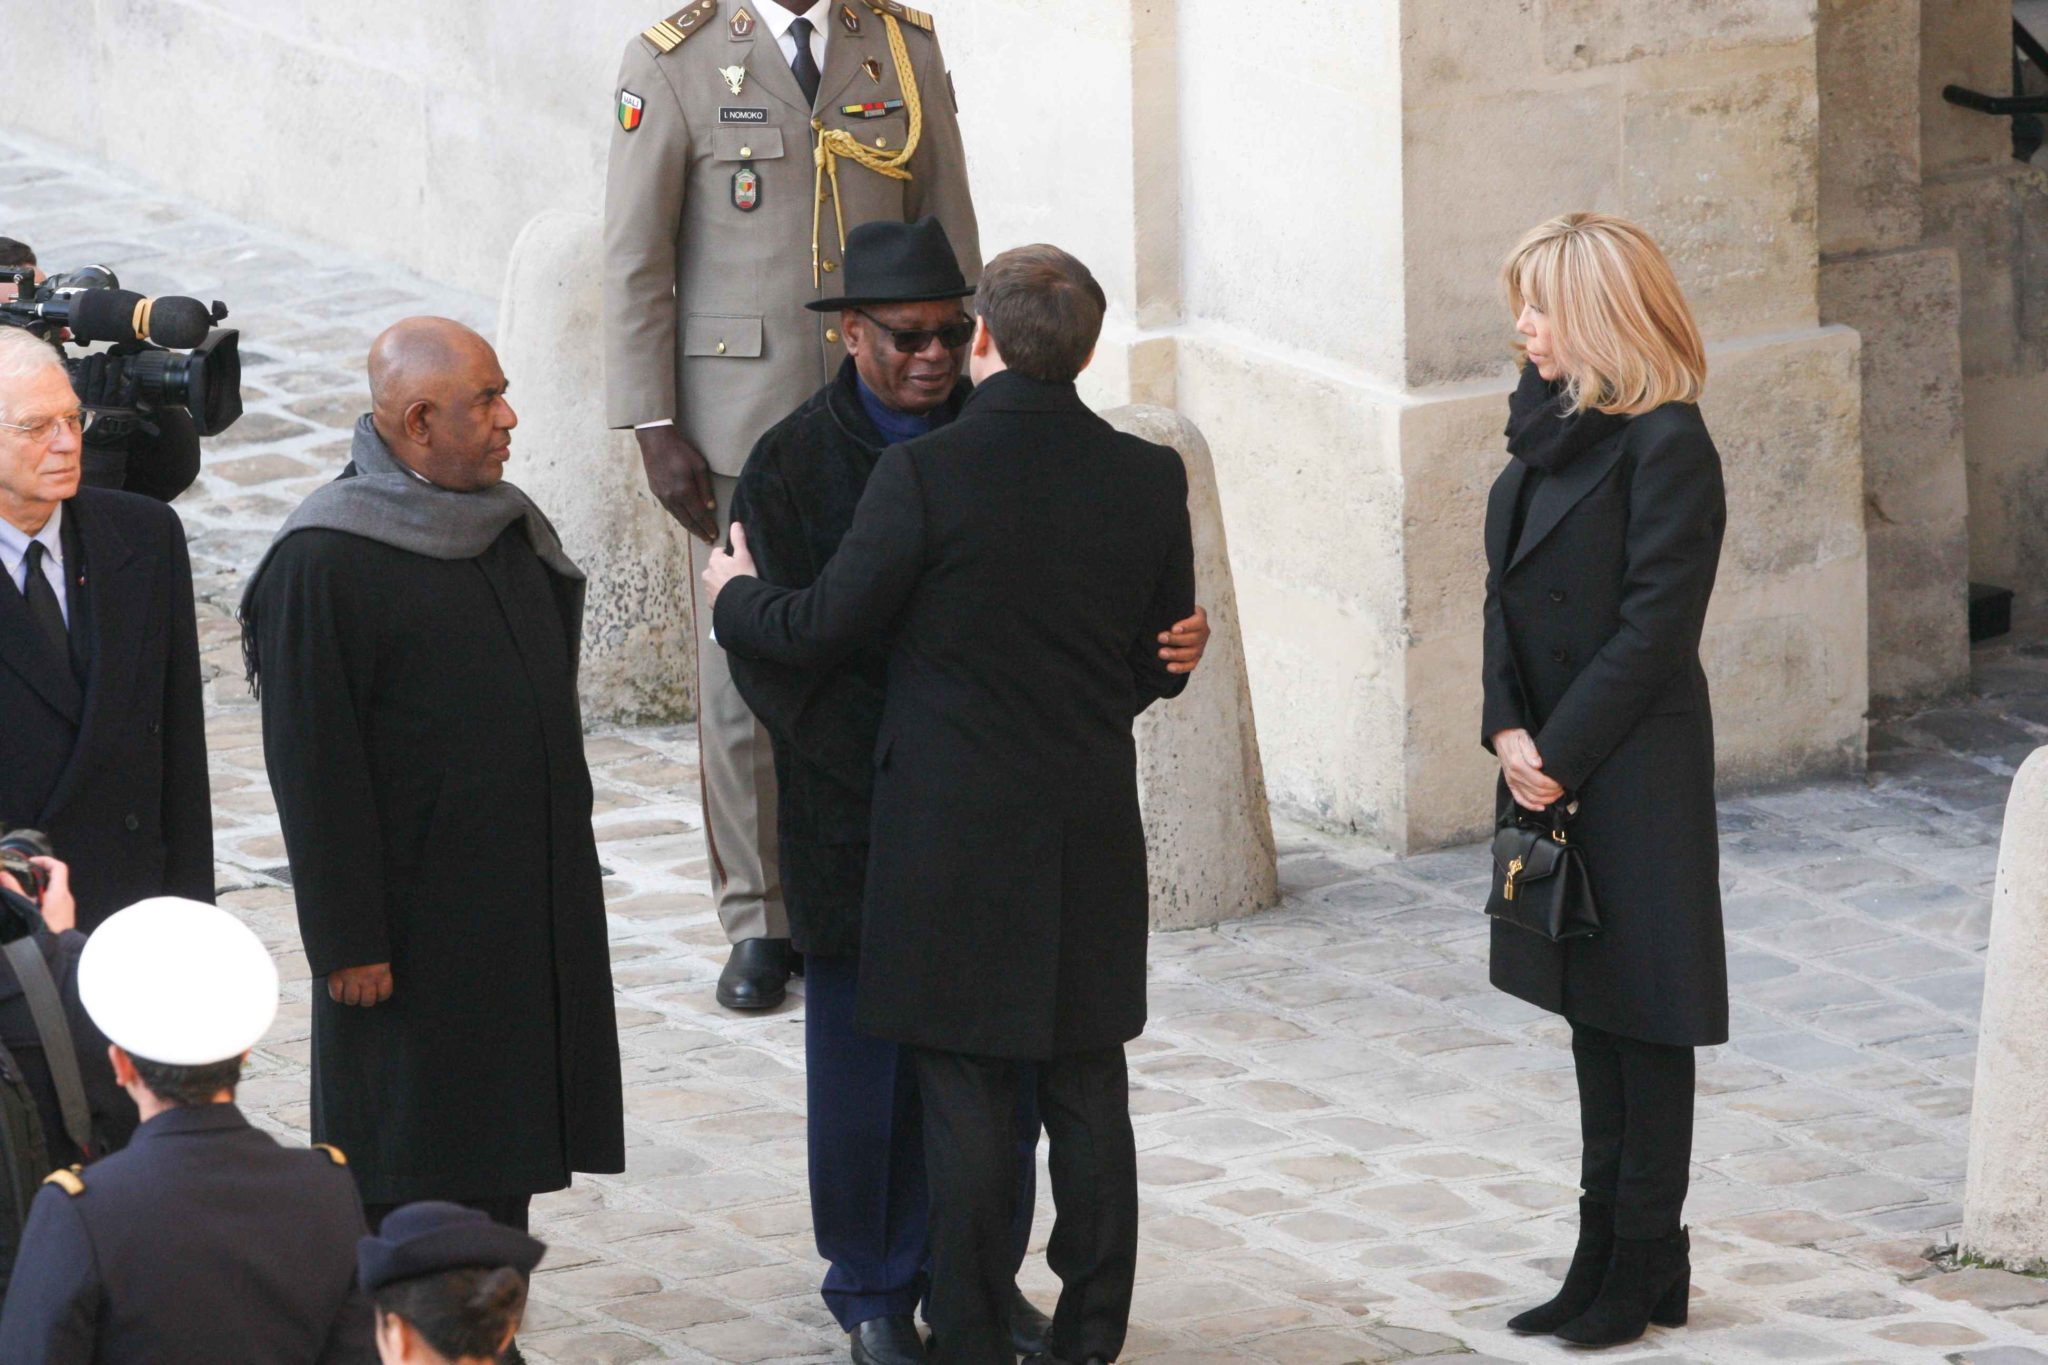 French President Emmanuel Macron (2R) hugs Mali's President Ibrahim Boubacar Keita (3R) while Brigitte Macron looks on prior a ceremony at the Invalides monument in Paris on December 2, 2019, to pay tribute to 13 French soldiers who died in a helicopter co